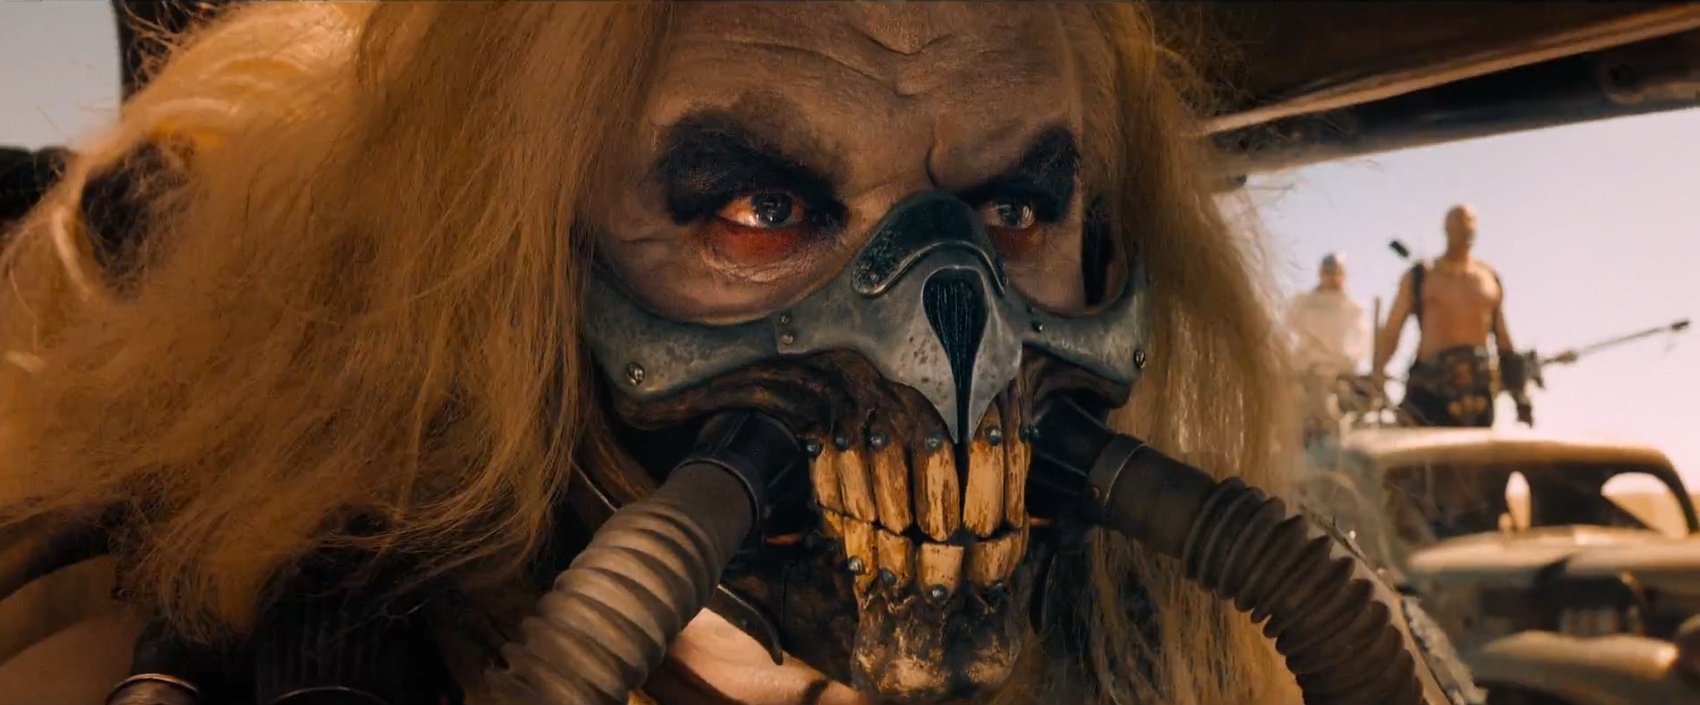 8. Immortan Joe – Mad Max: Fury Road